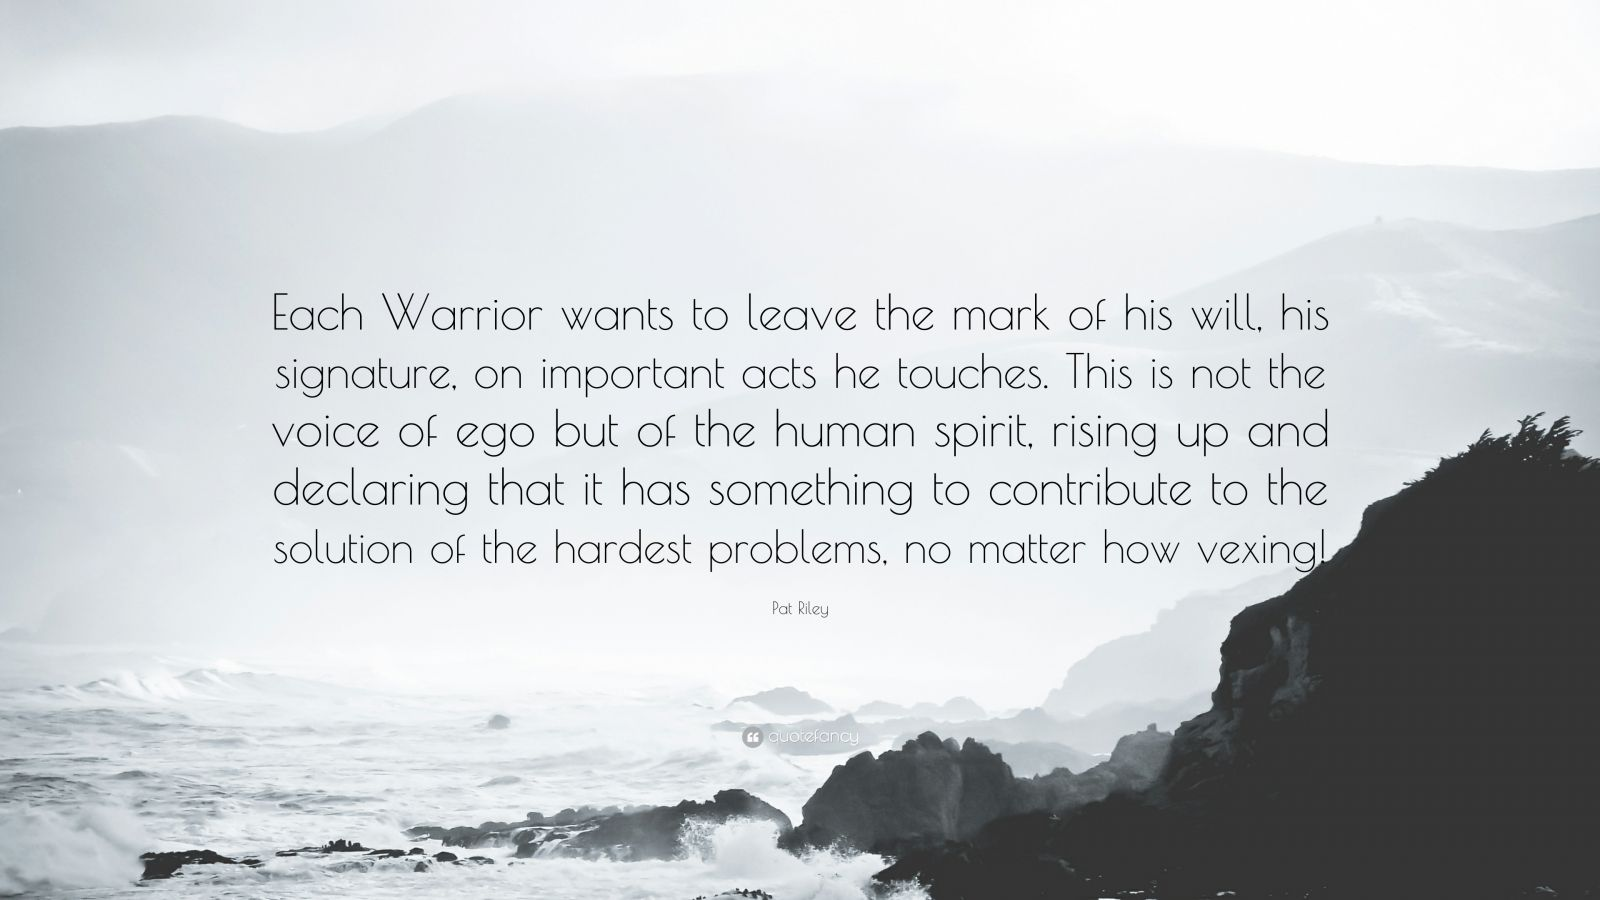 """Pat Riley Quote: """"Each Warrior wants to leave the mark of his will, his signature, on important acts he touches. This is not the voice of ego but of the human spirit, rising up and declaring that it has something to contribute to the solution of the hardest problems, no matter how vexing!"""""""